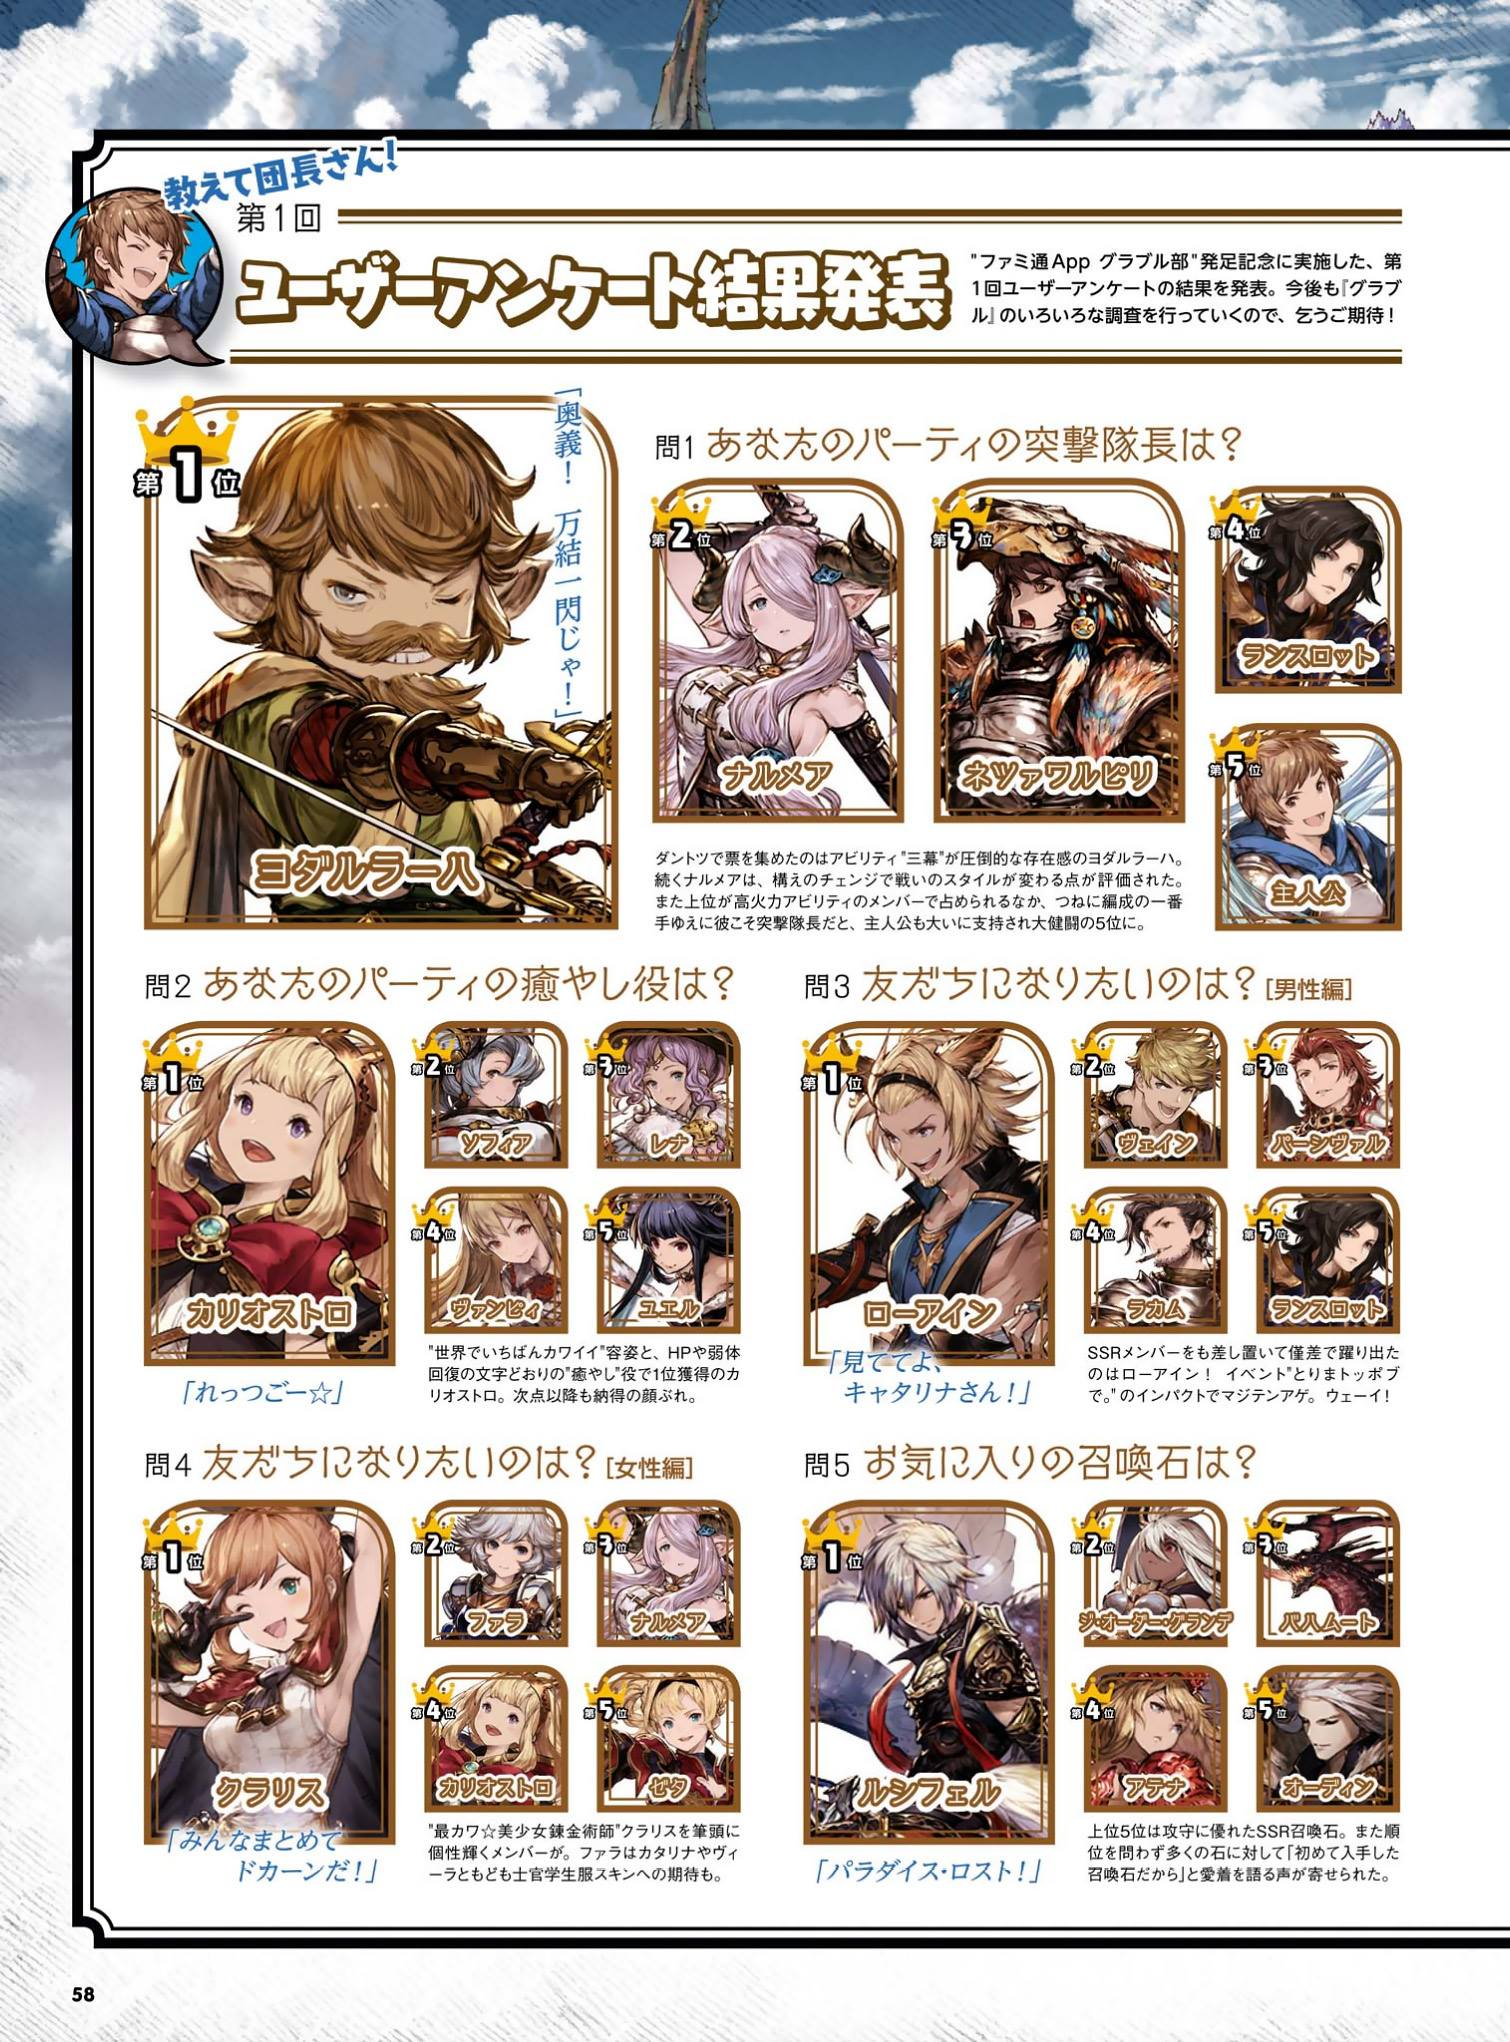 Gbf Character Tier List : character, Results, Granblue_en